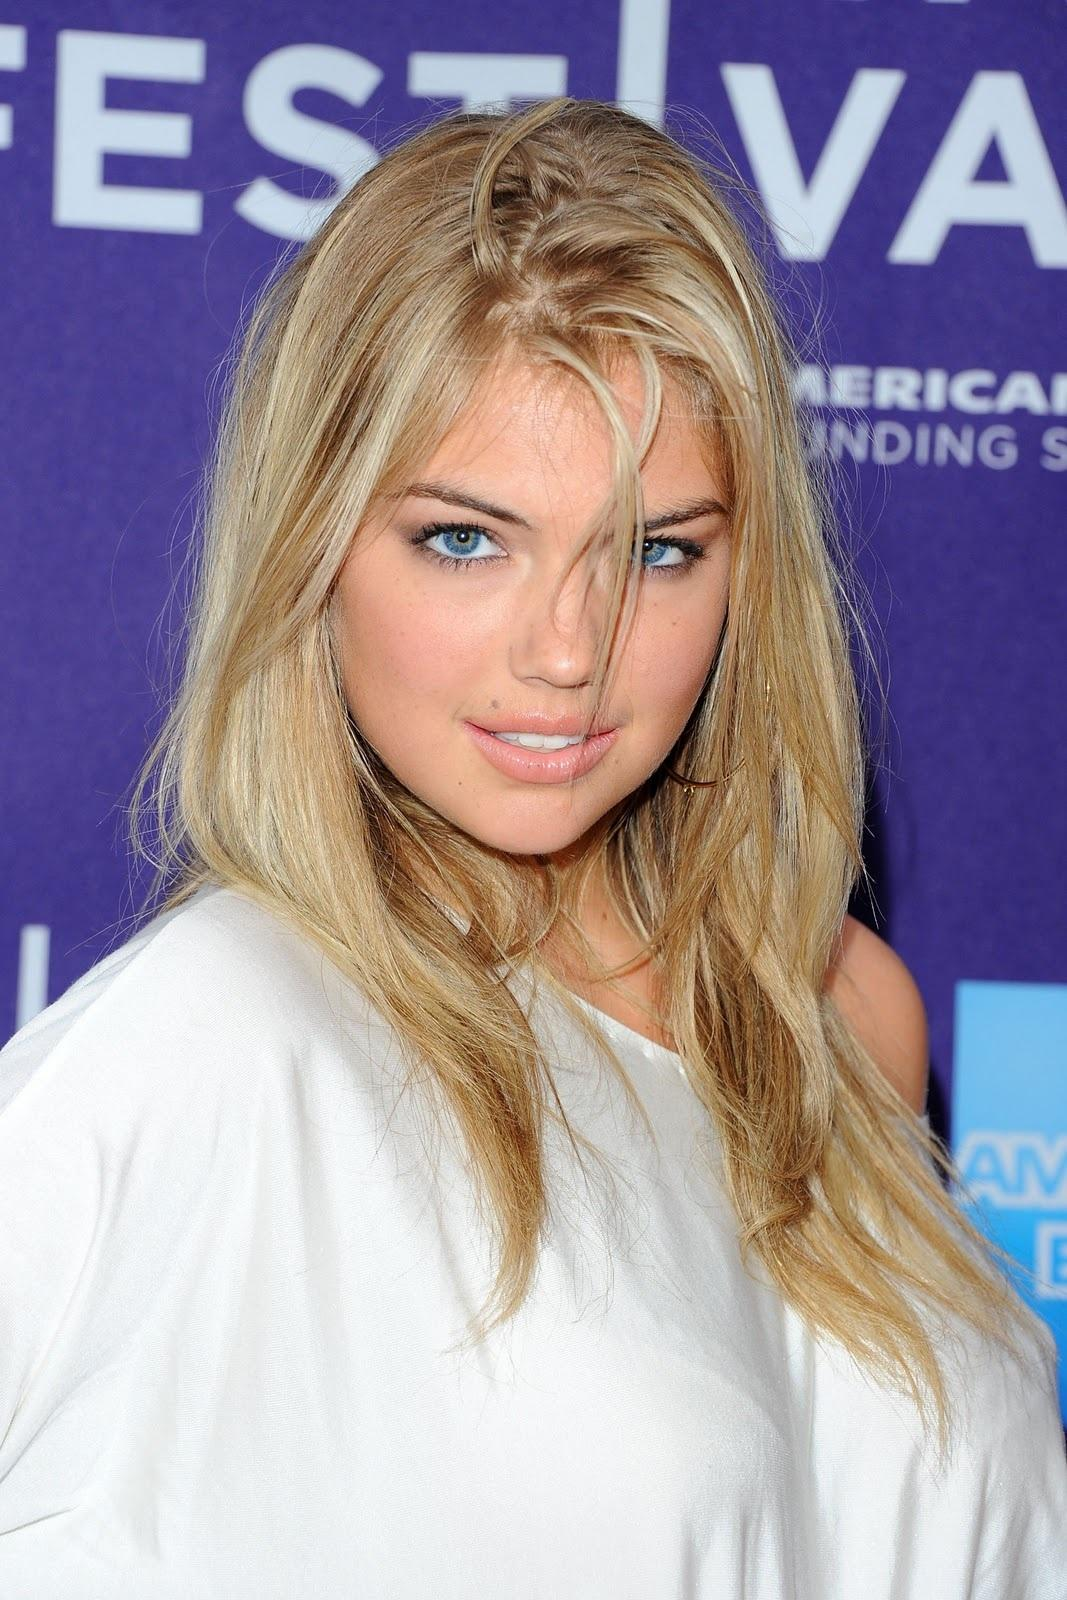 Kate Upton Exposed! A Civil War Coupling…